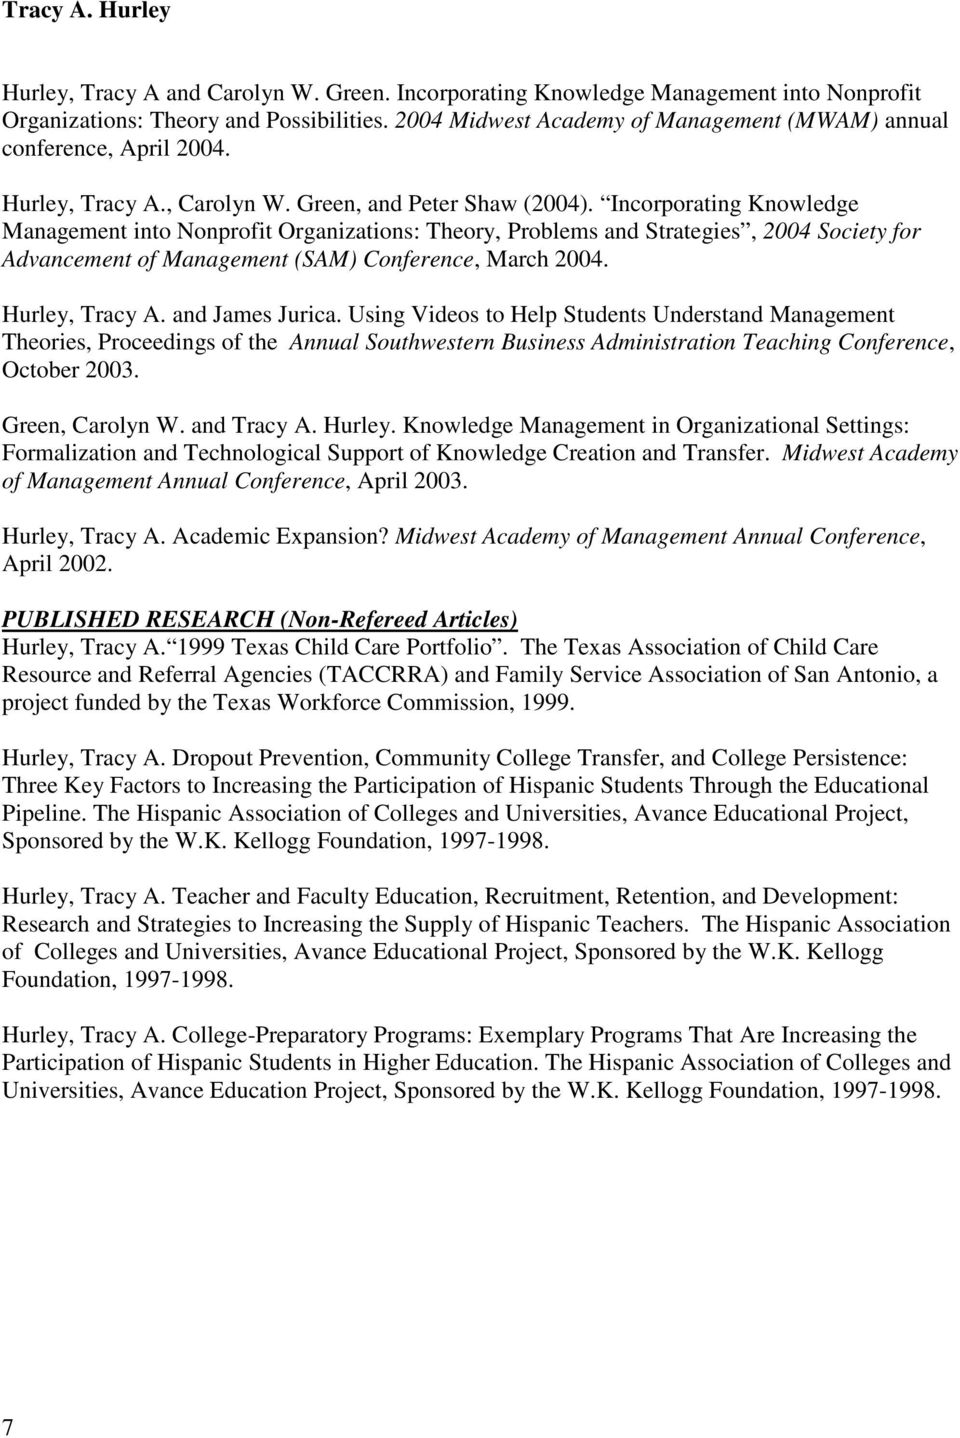 Incorporating Knowledge Management into Nonprofit Organizations: Theory, Problems and Strategies, 2004 Society for Advancement of Management (SAM) Conference, March 2004. Hurley, Tracy A.